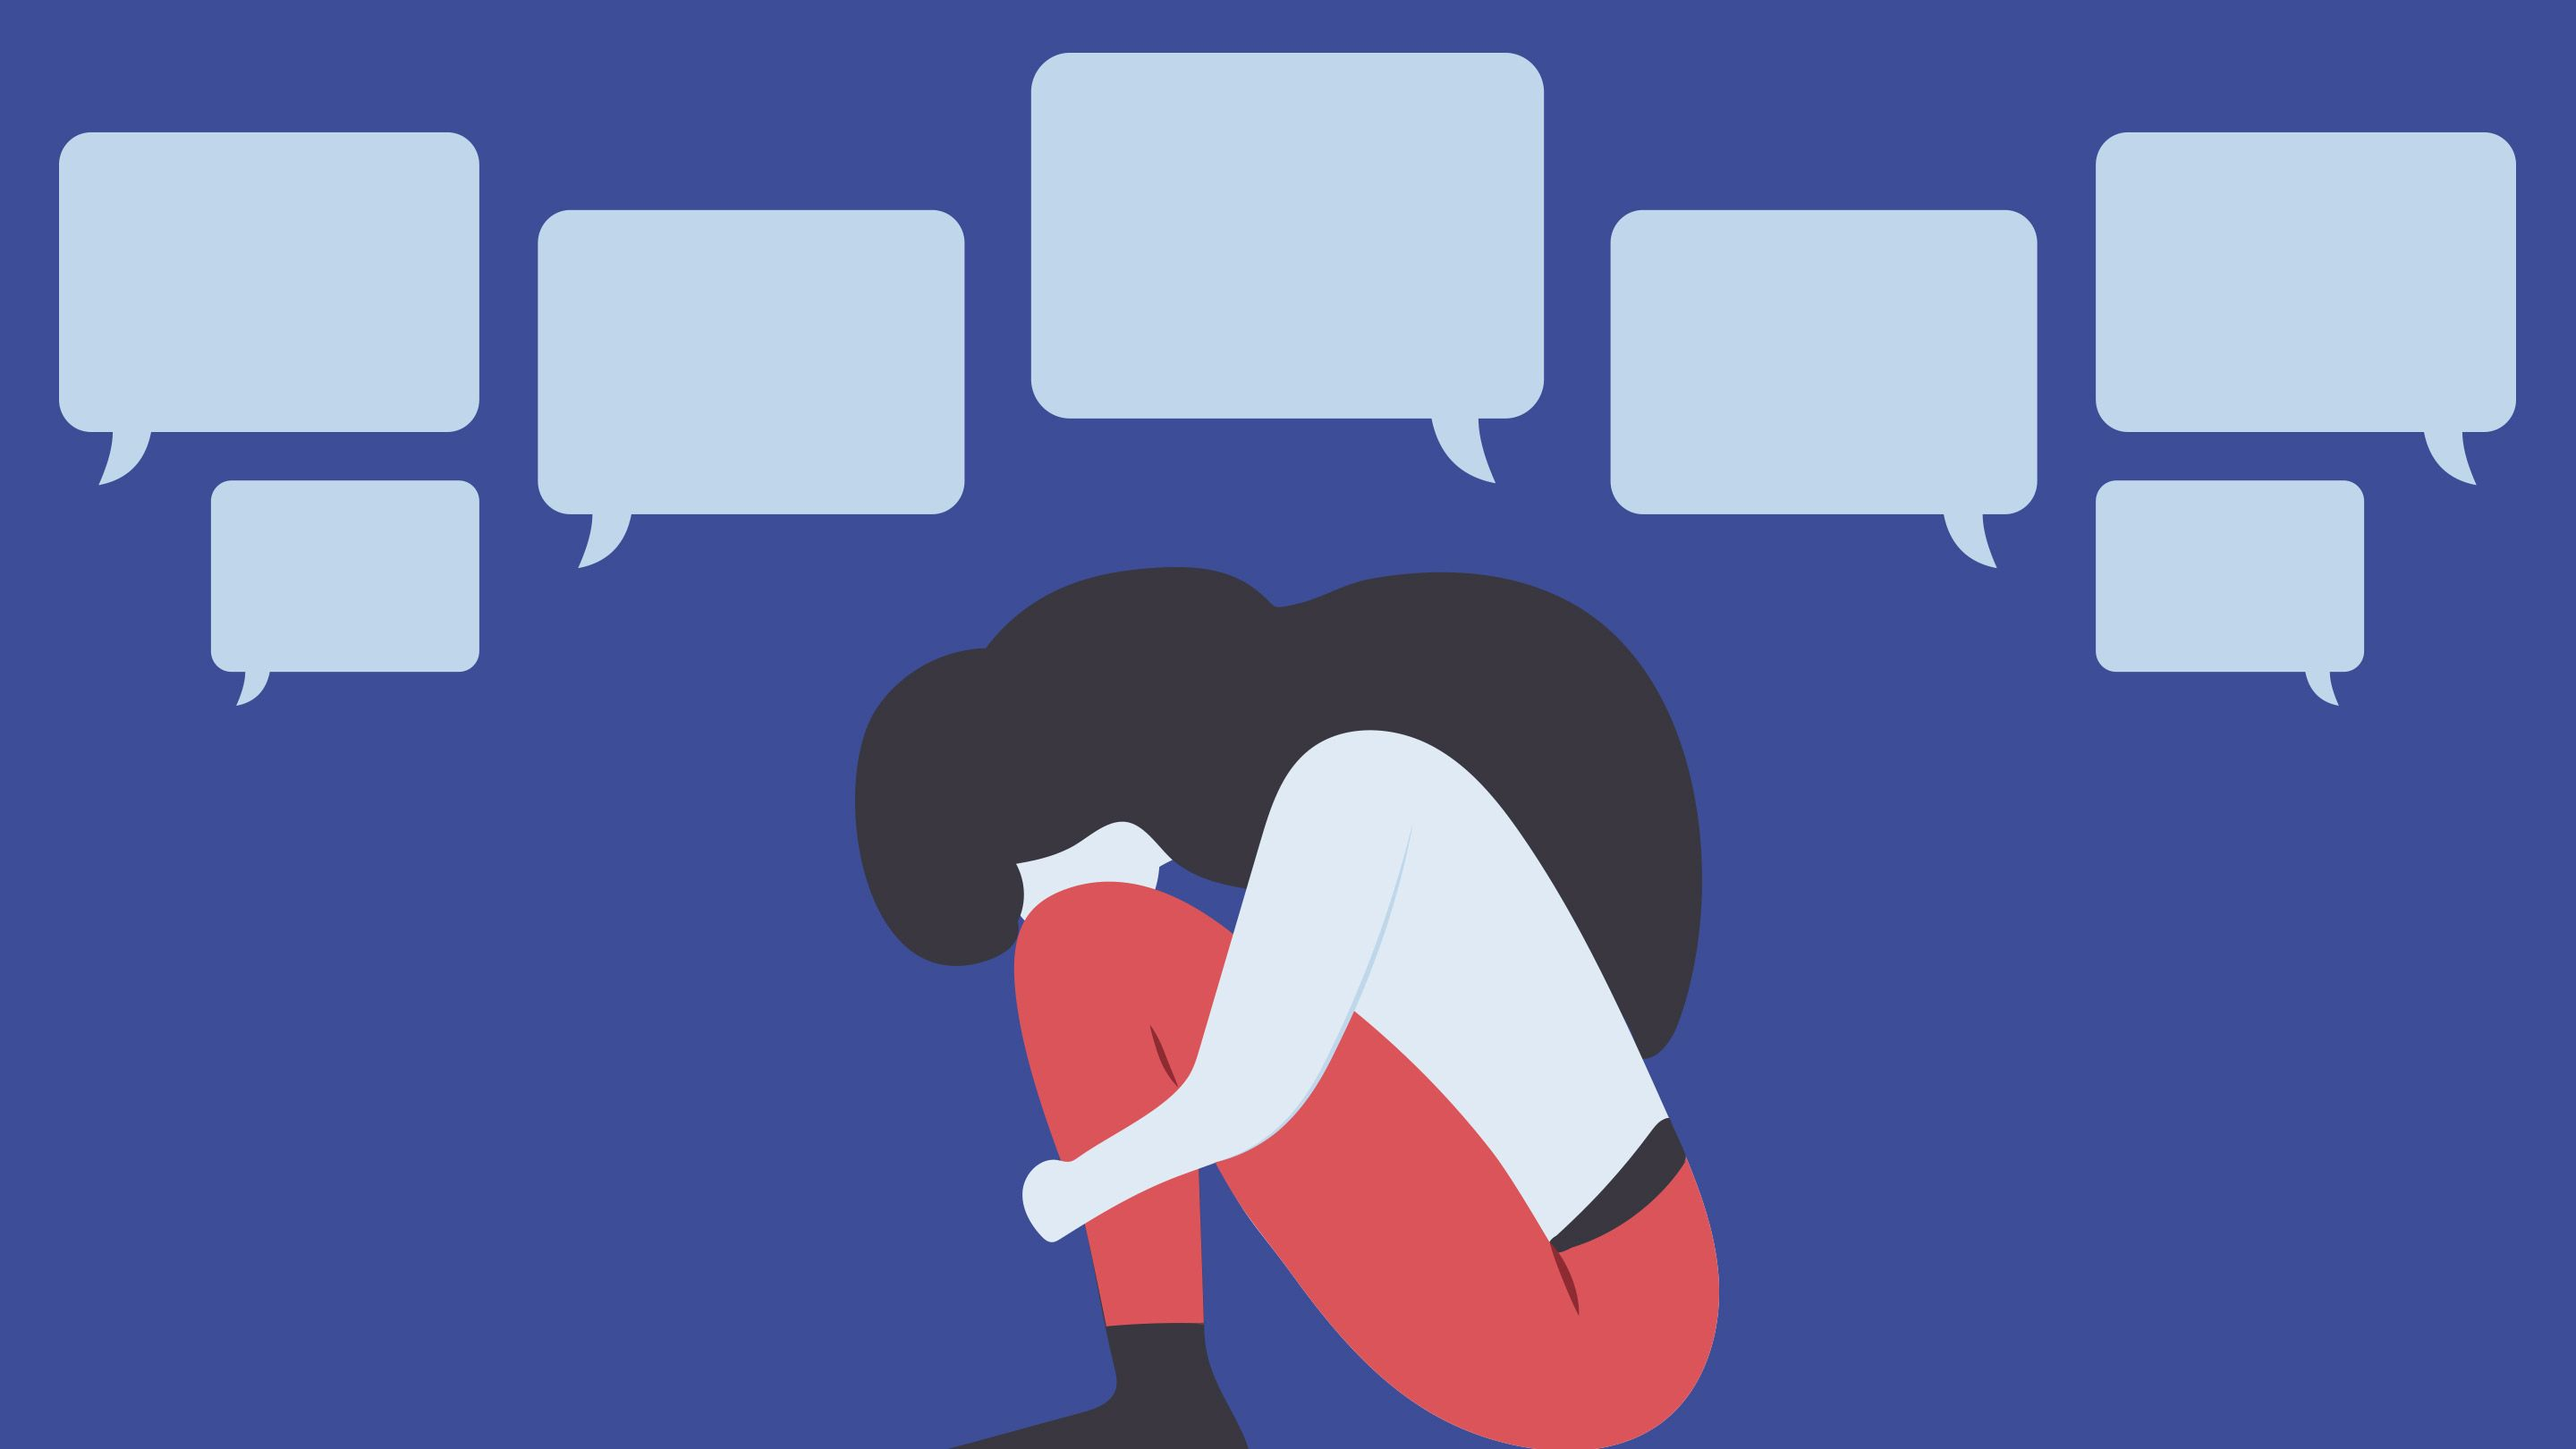 empowering students to curb bullying edutopia